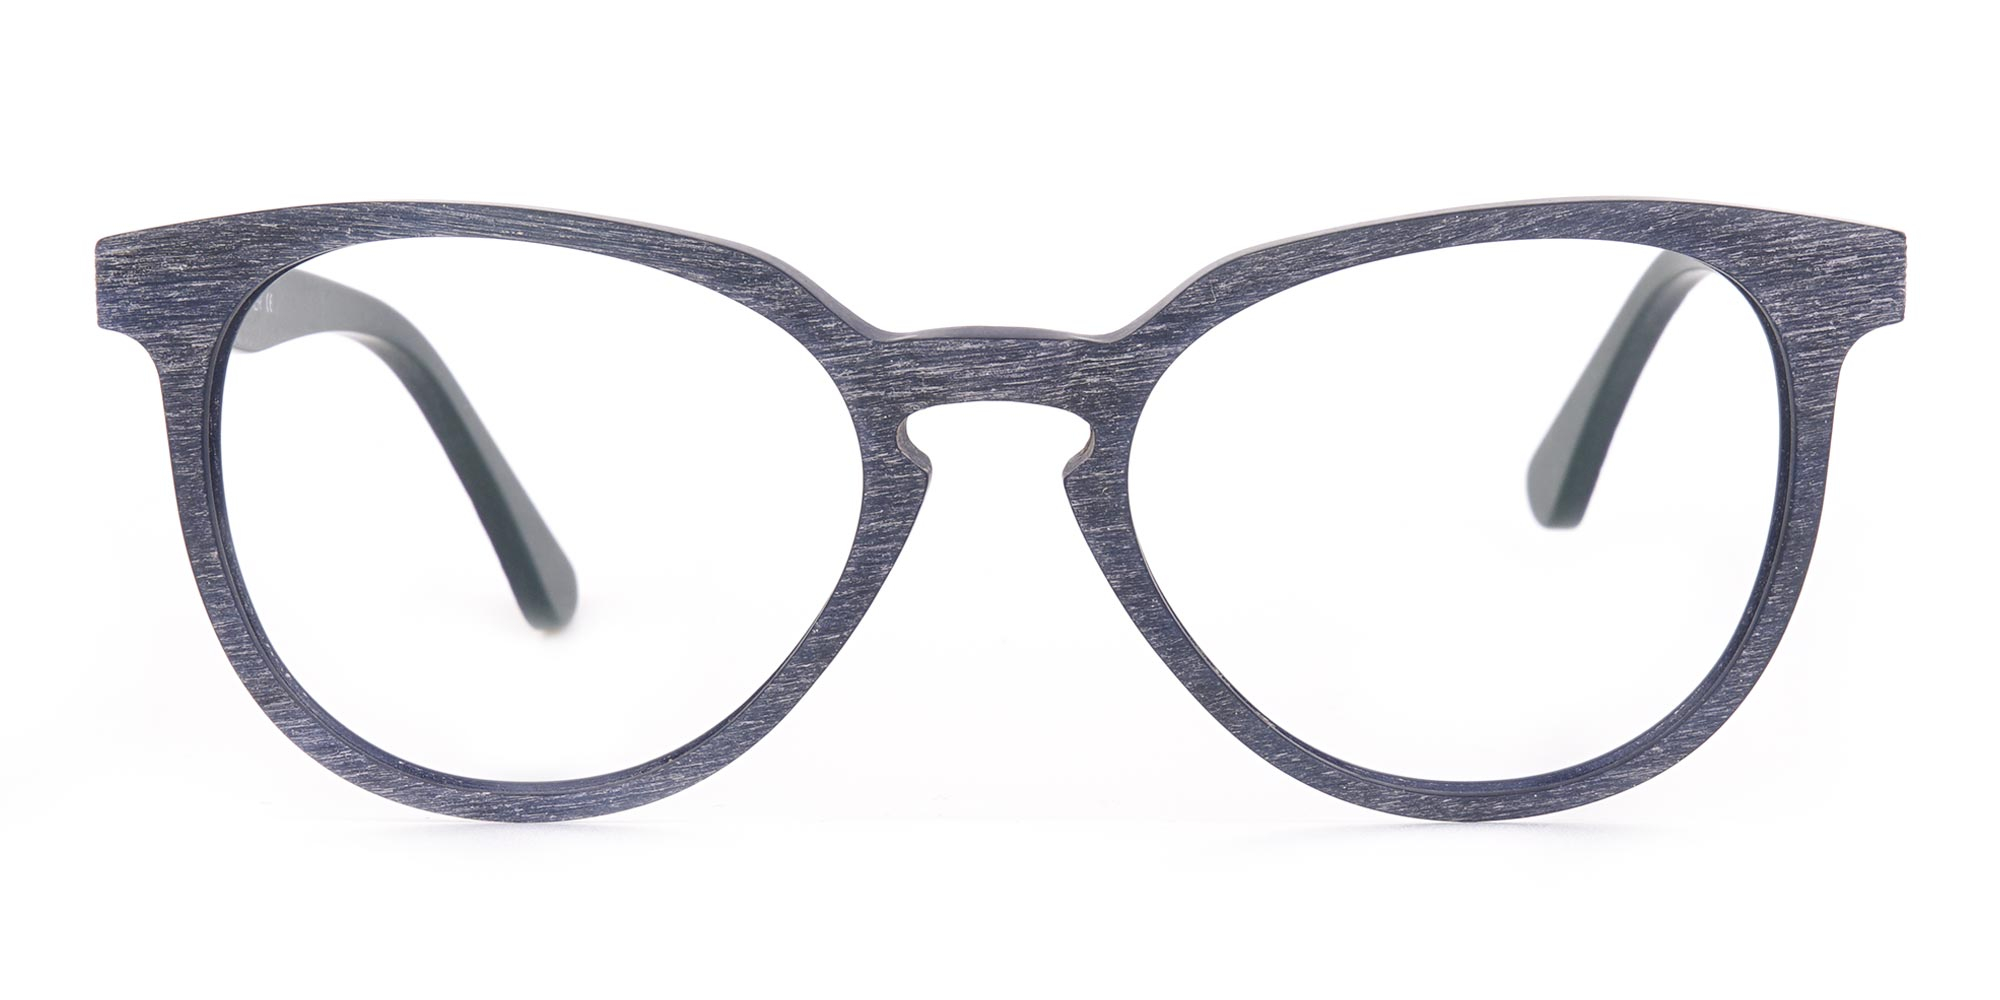 Dusty Green and Blue Wooden Glasses Frame